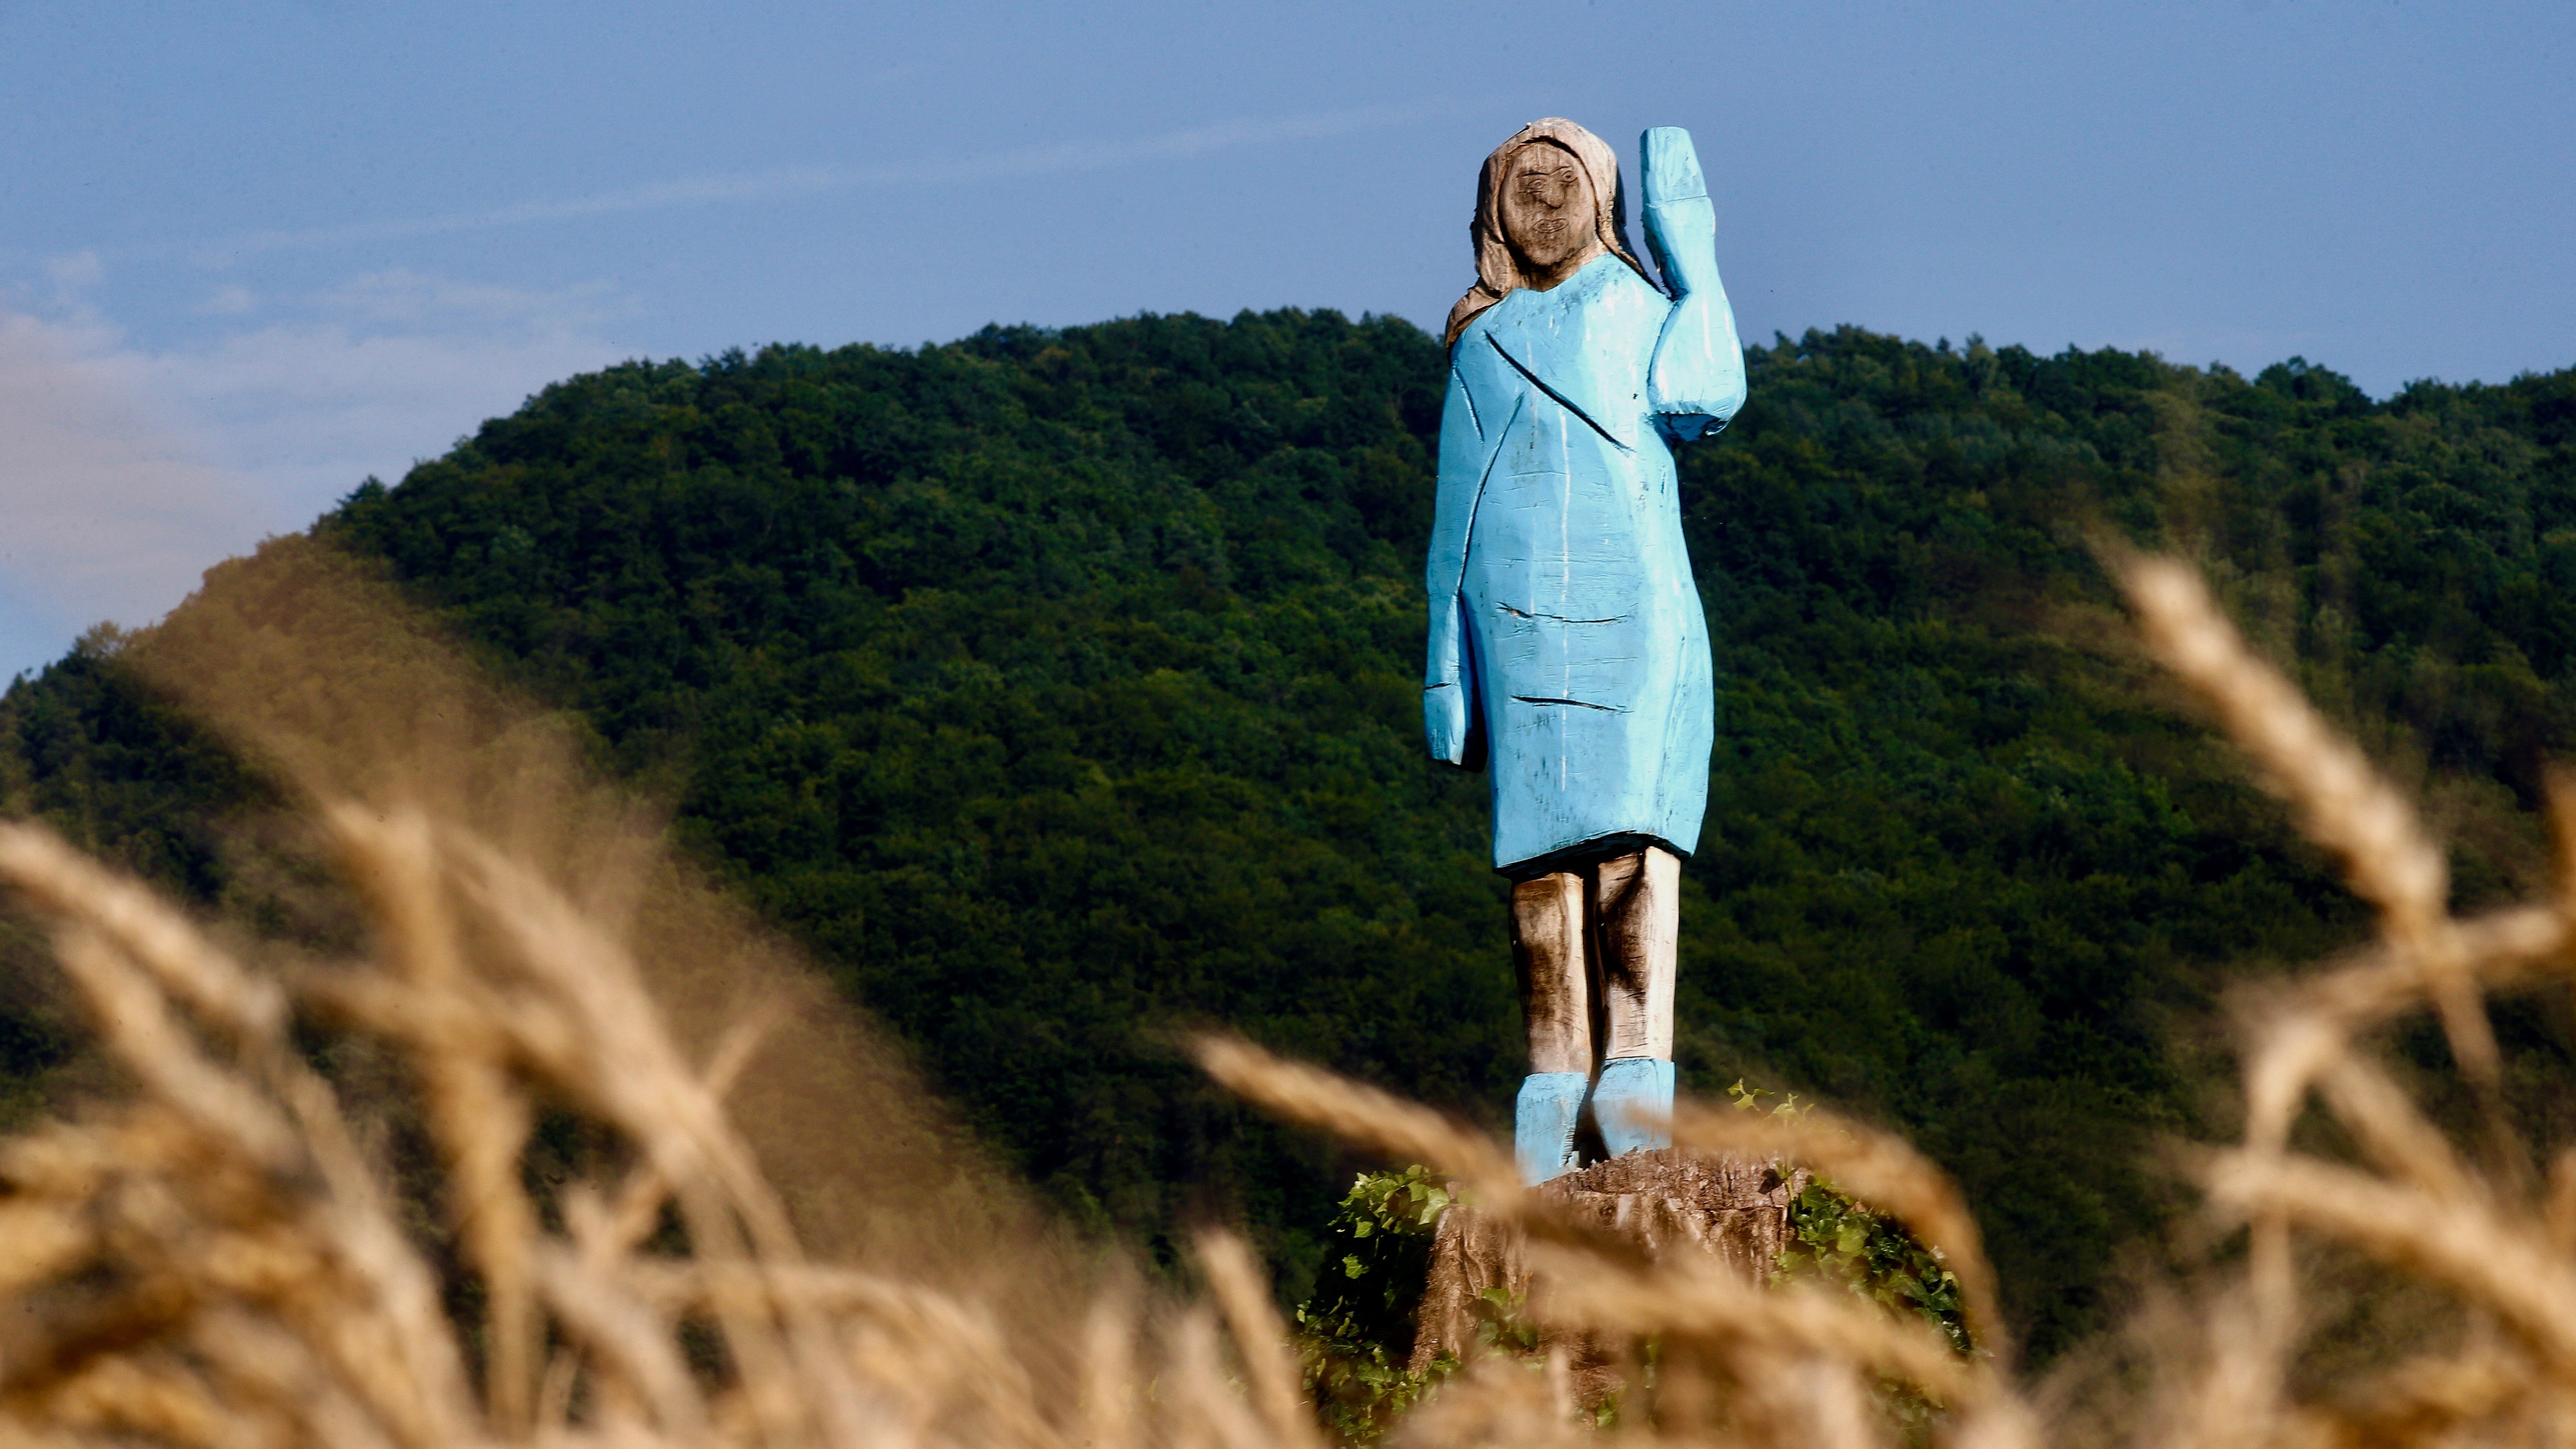 A crudely sculpted wooden sculpture of a woman wearing a light blue dress and waving with her left hand standing in a field with a green hill or mountain in the background